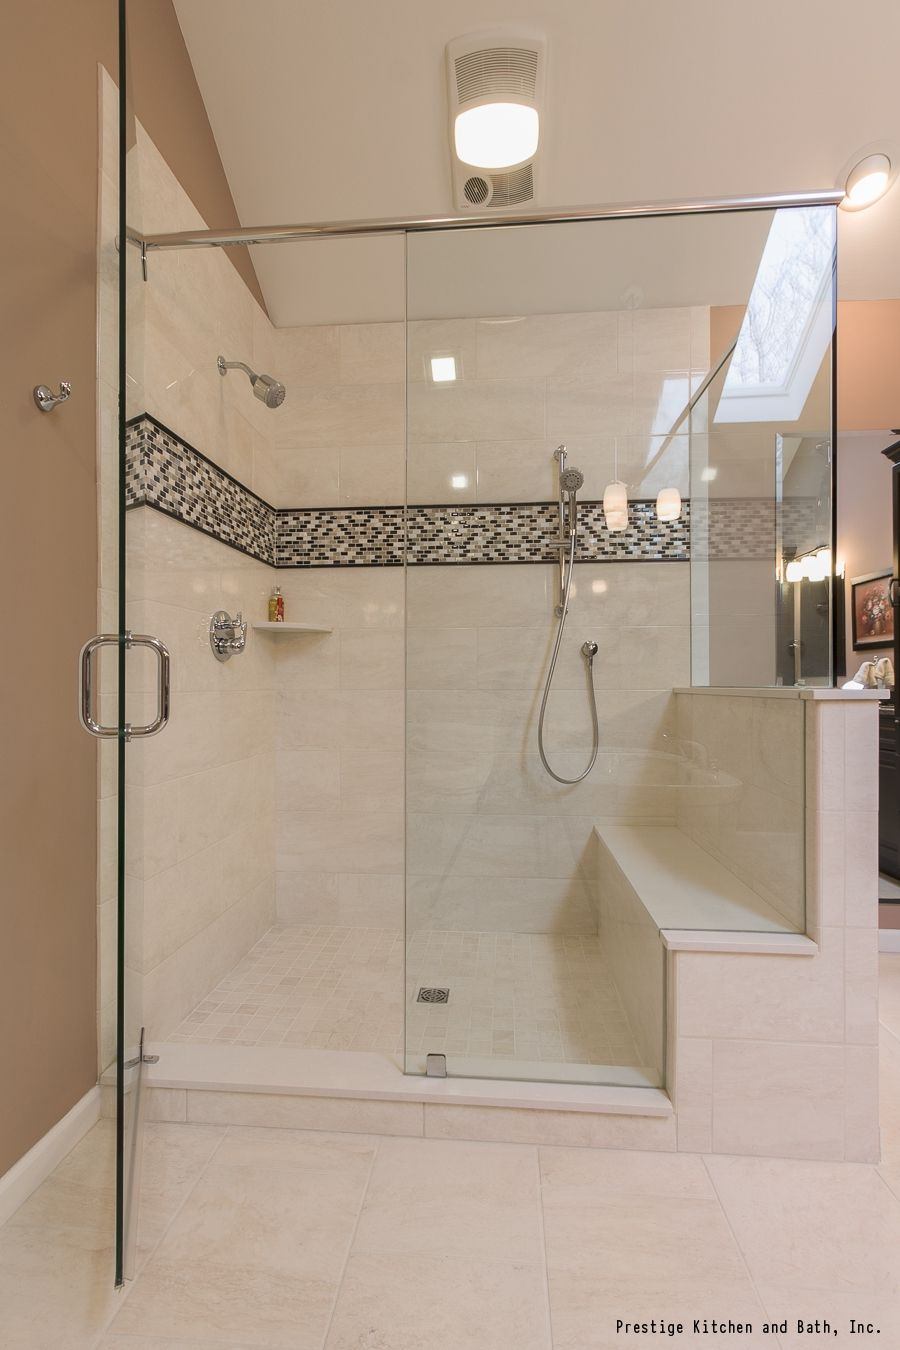 A Gorgeous Shower With Neutral Tile And A Black And White Backsplash Over Time Existing Shower